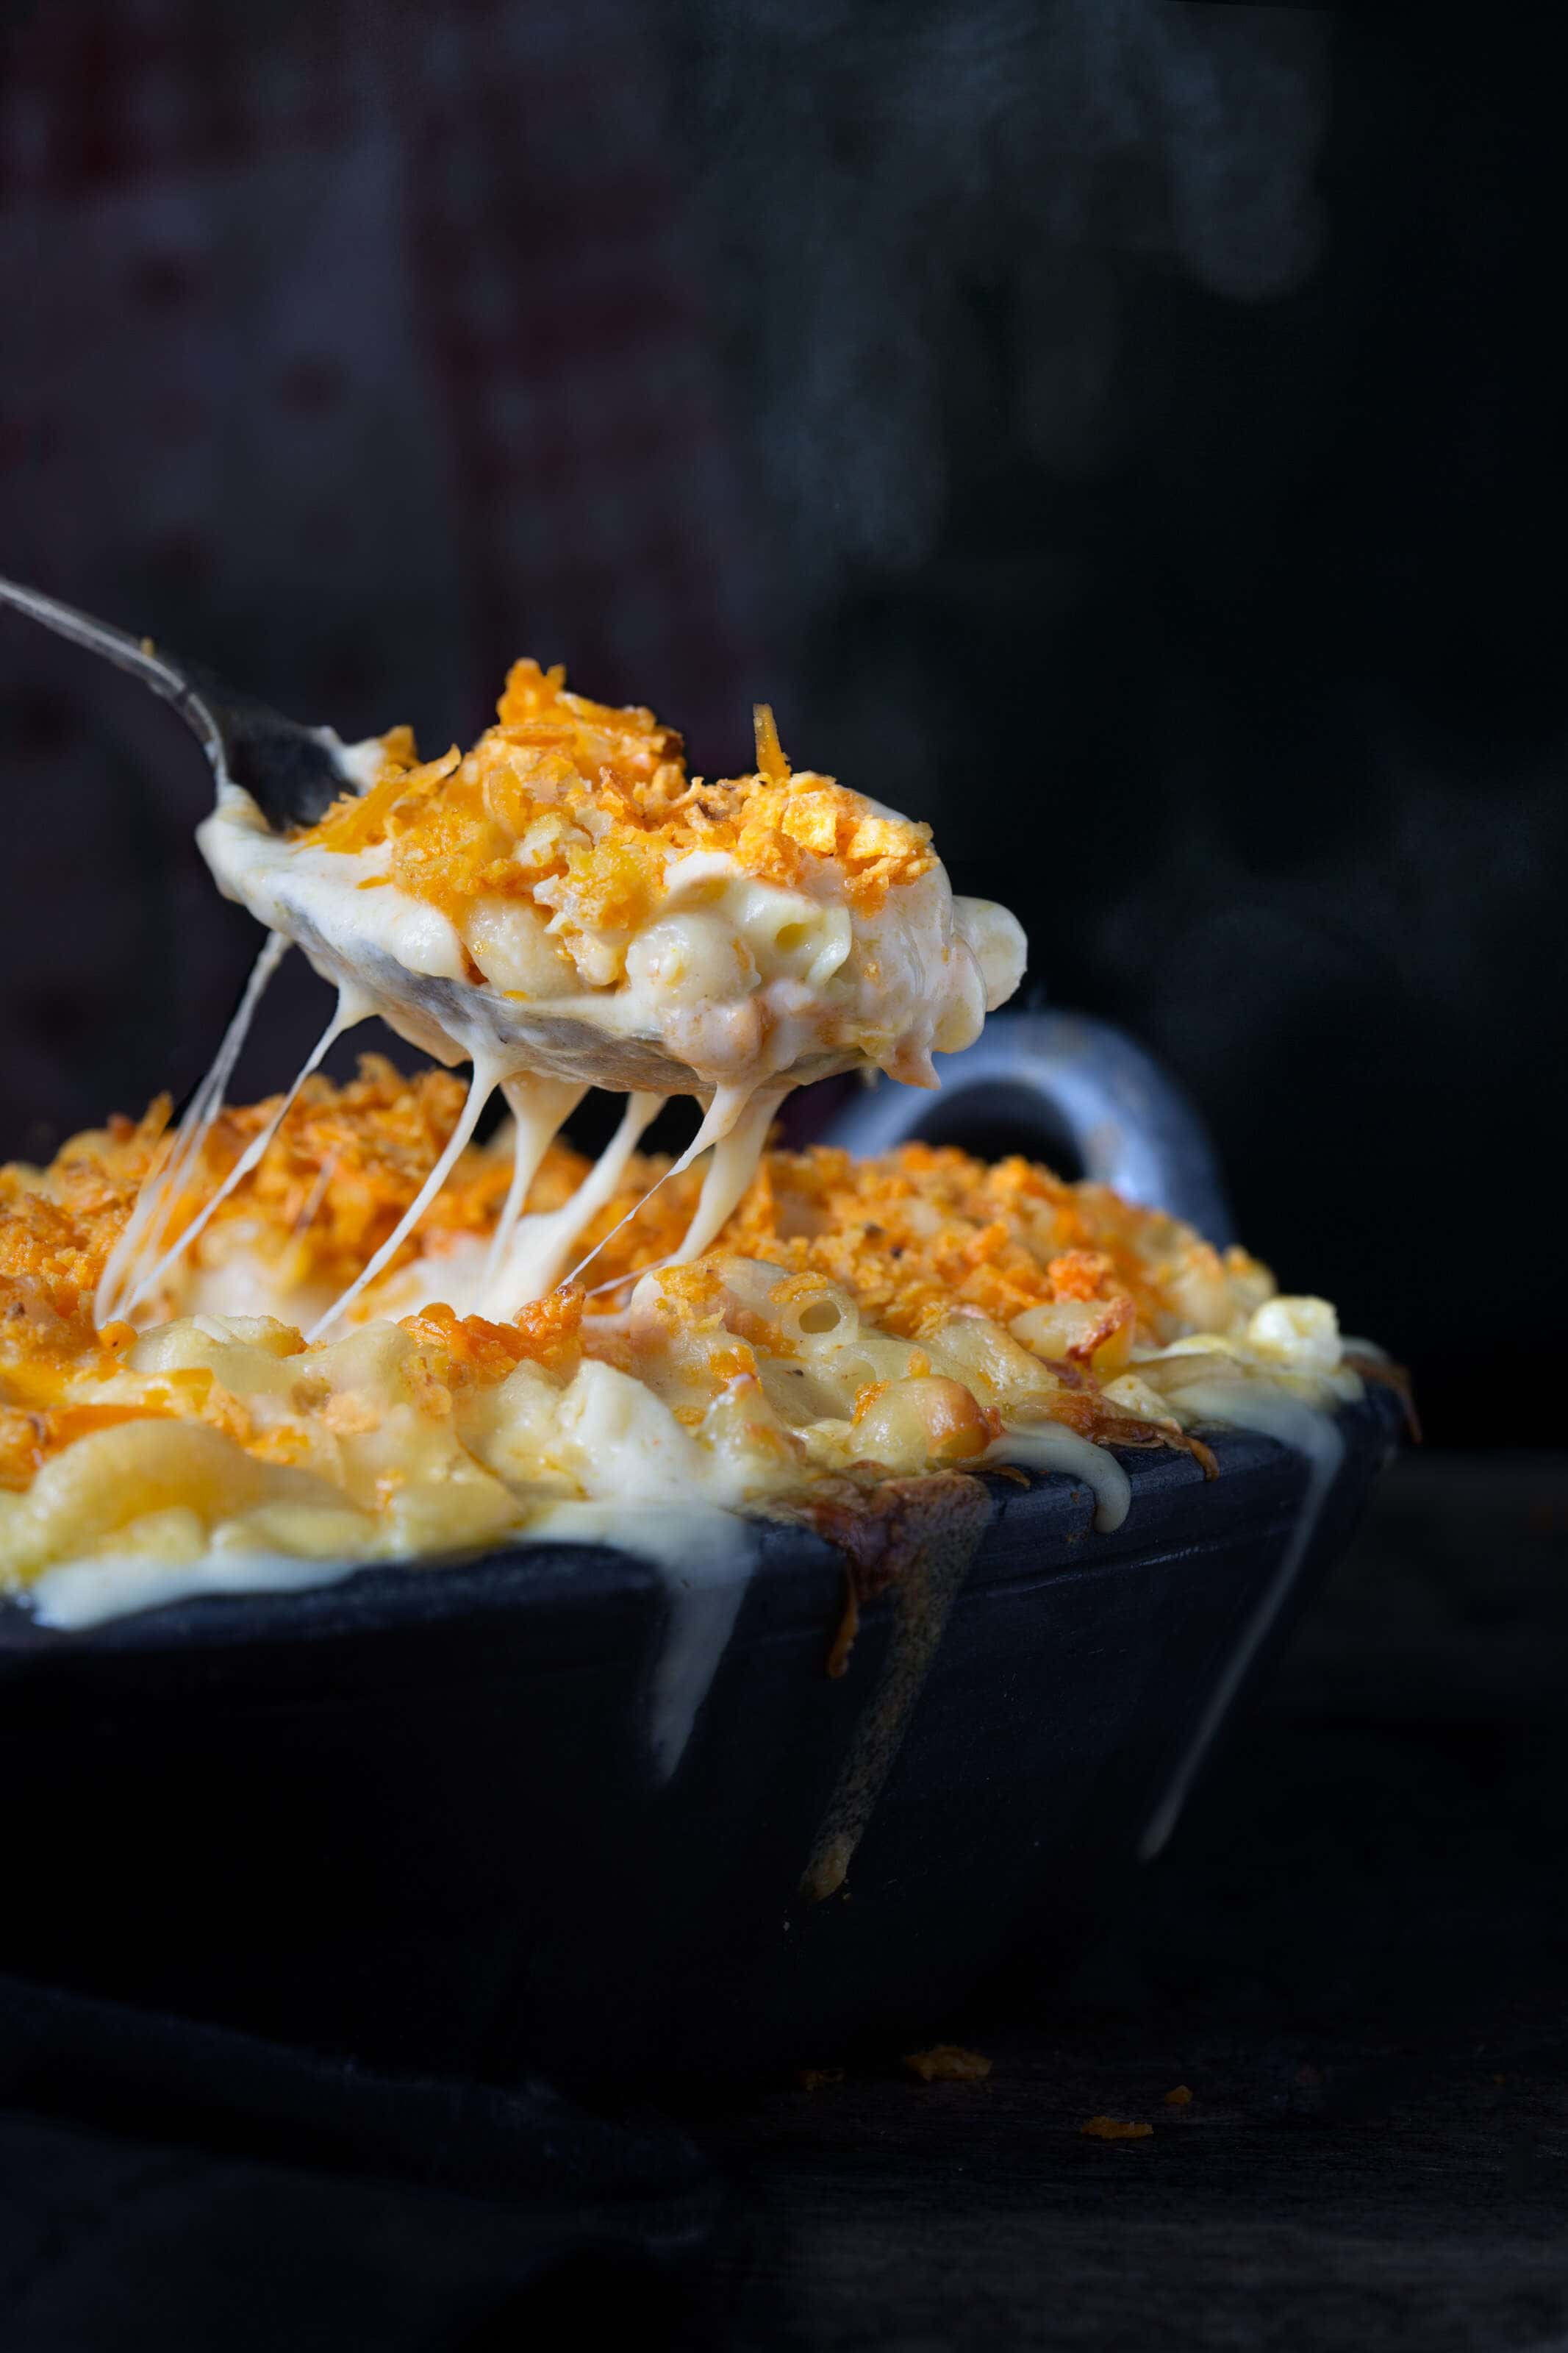 Hot macaroni cheese being served with a spoon with steam rising from it.